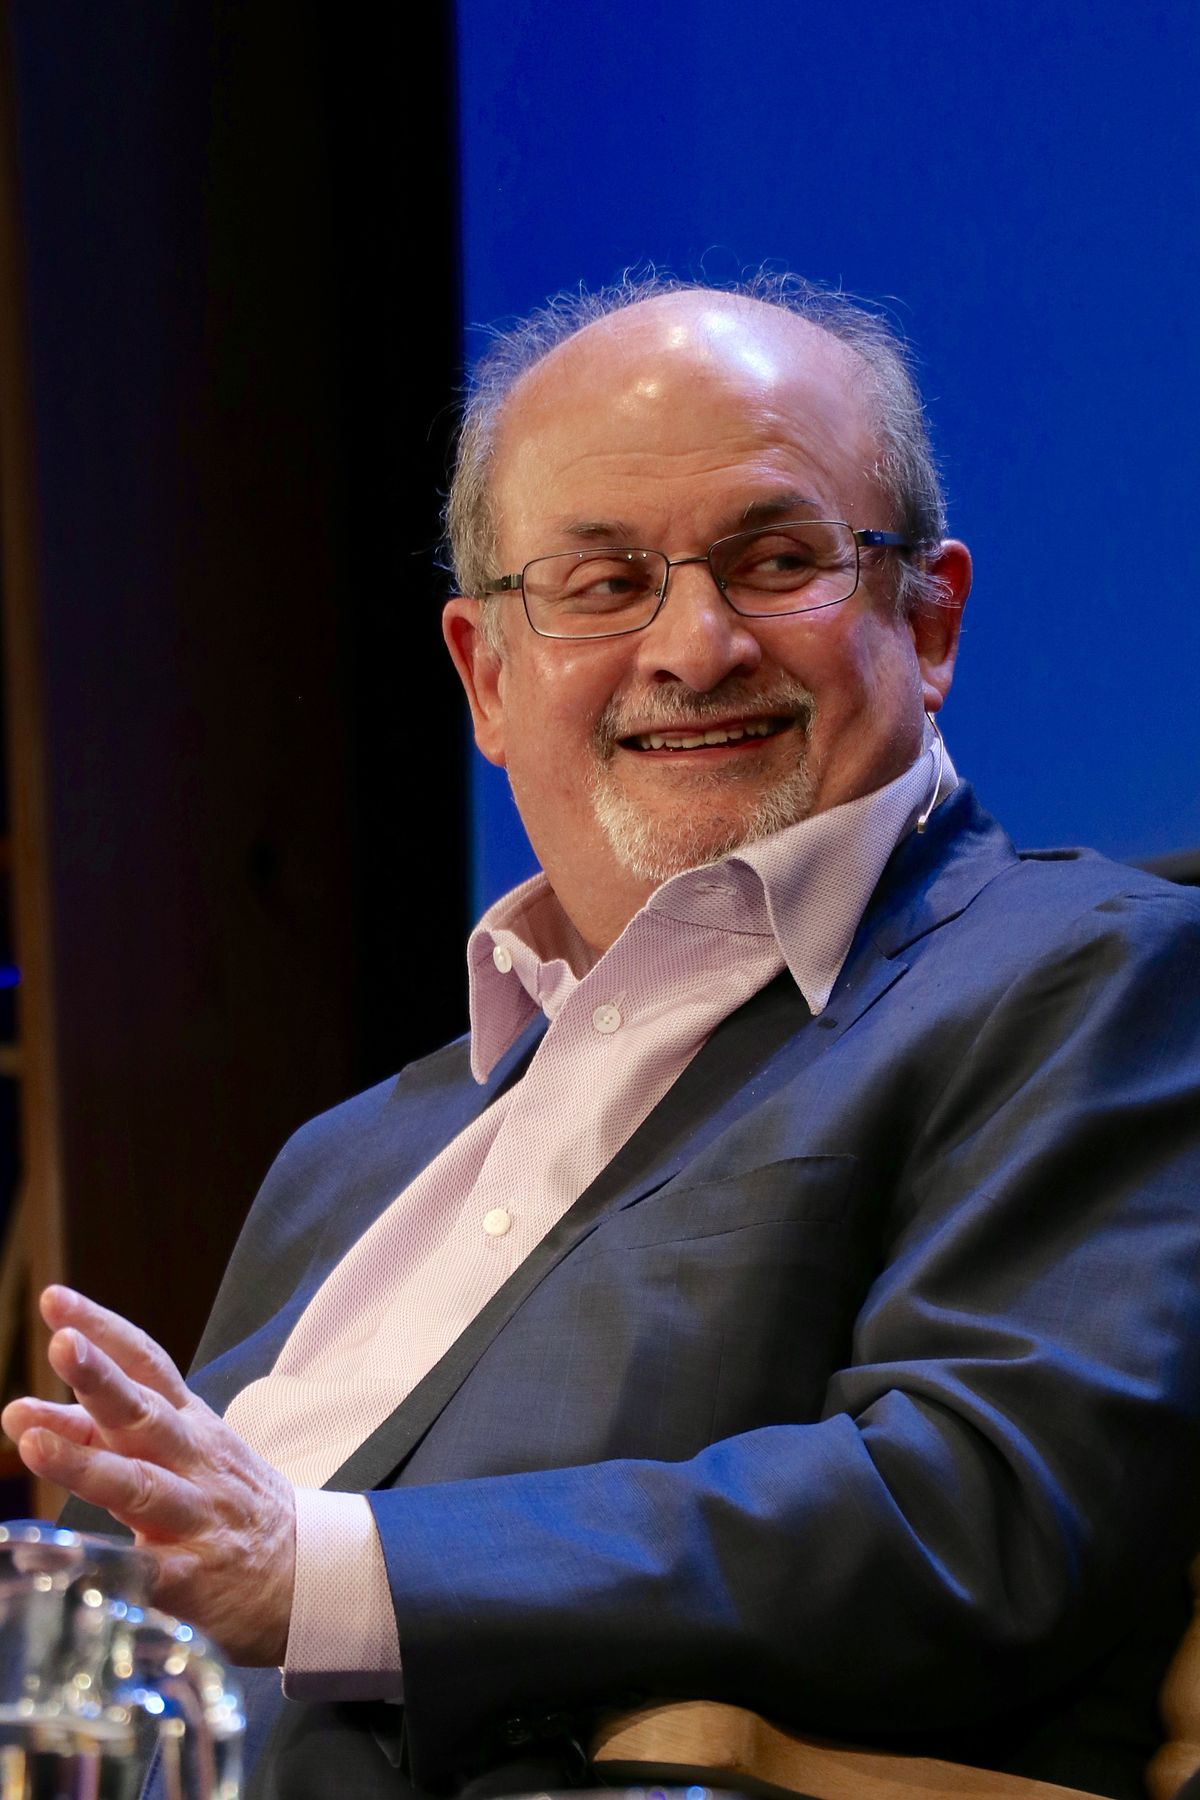 Fact Check: No, Salman Rushdie Never Said Muslims Destroy A Nation In The Name Of Islam